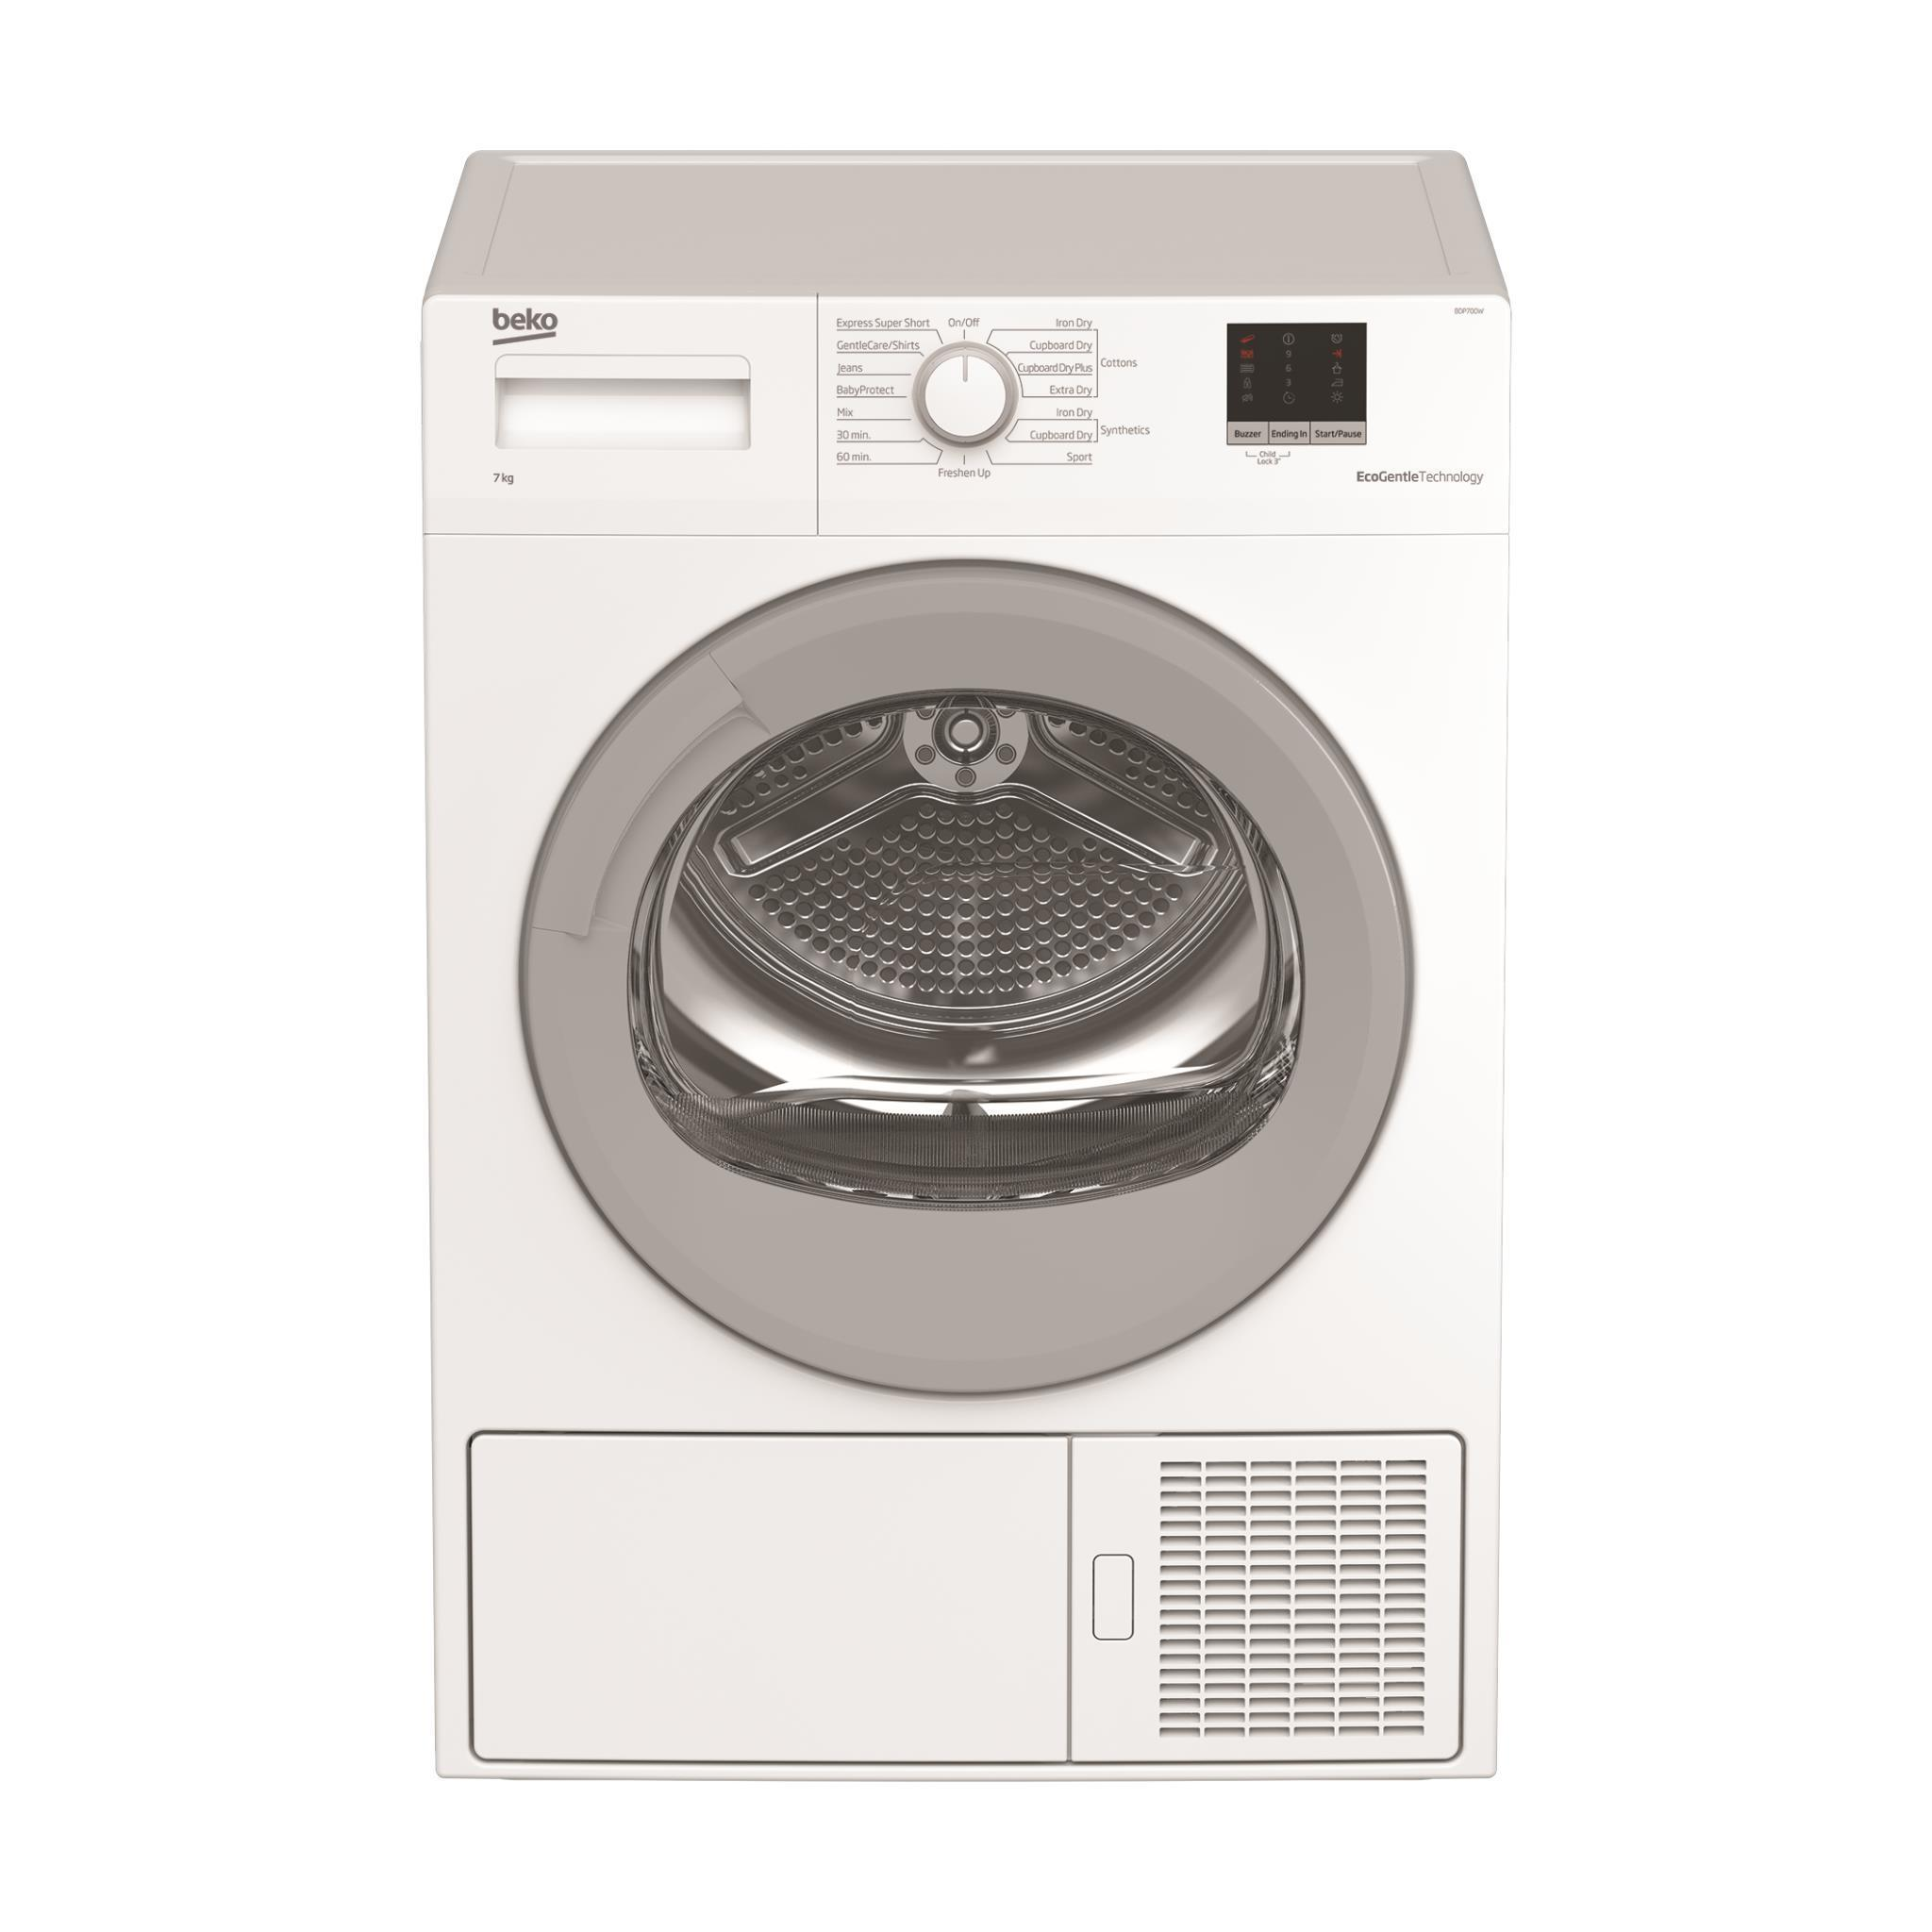 Beko BDP700W7kg Sensor Controlled Heat Pump Dryer